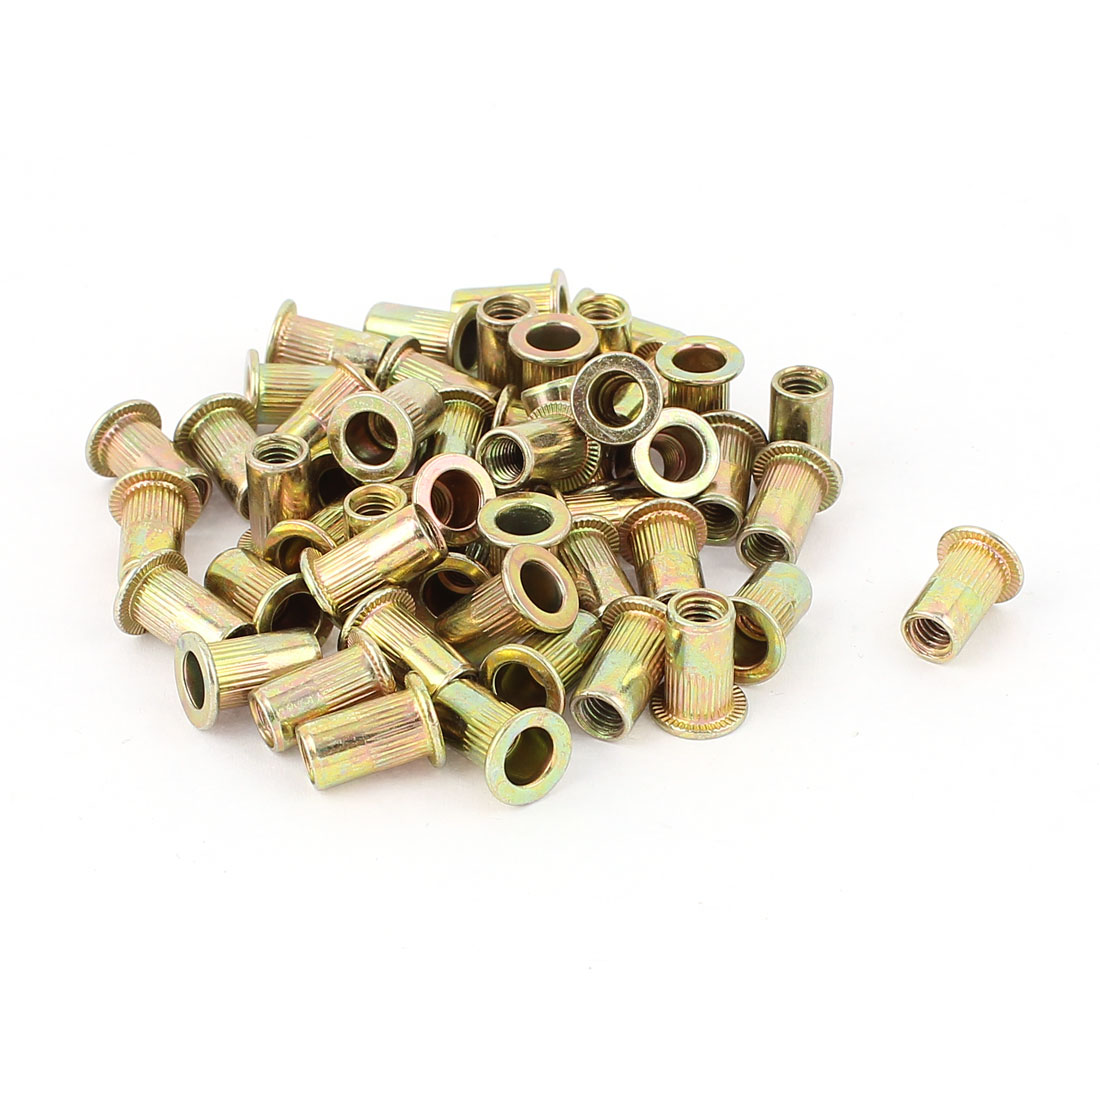 5mm Thread Dia 13mm Long Metal Rivet Nut Insert Nutsert Gold Tone 50Pcs